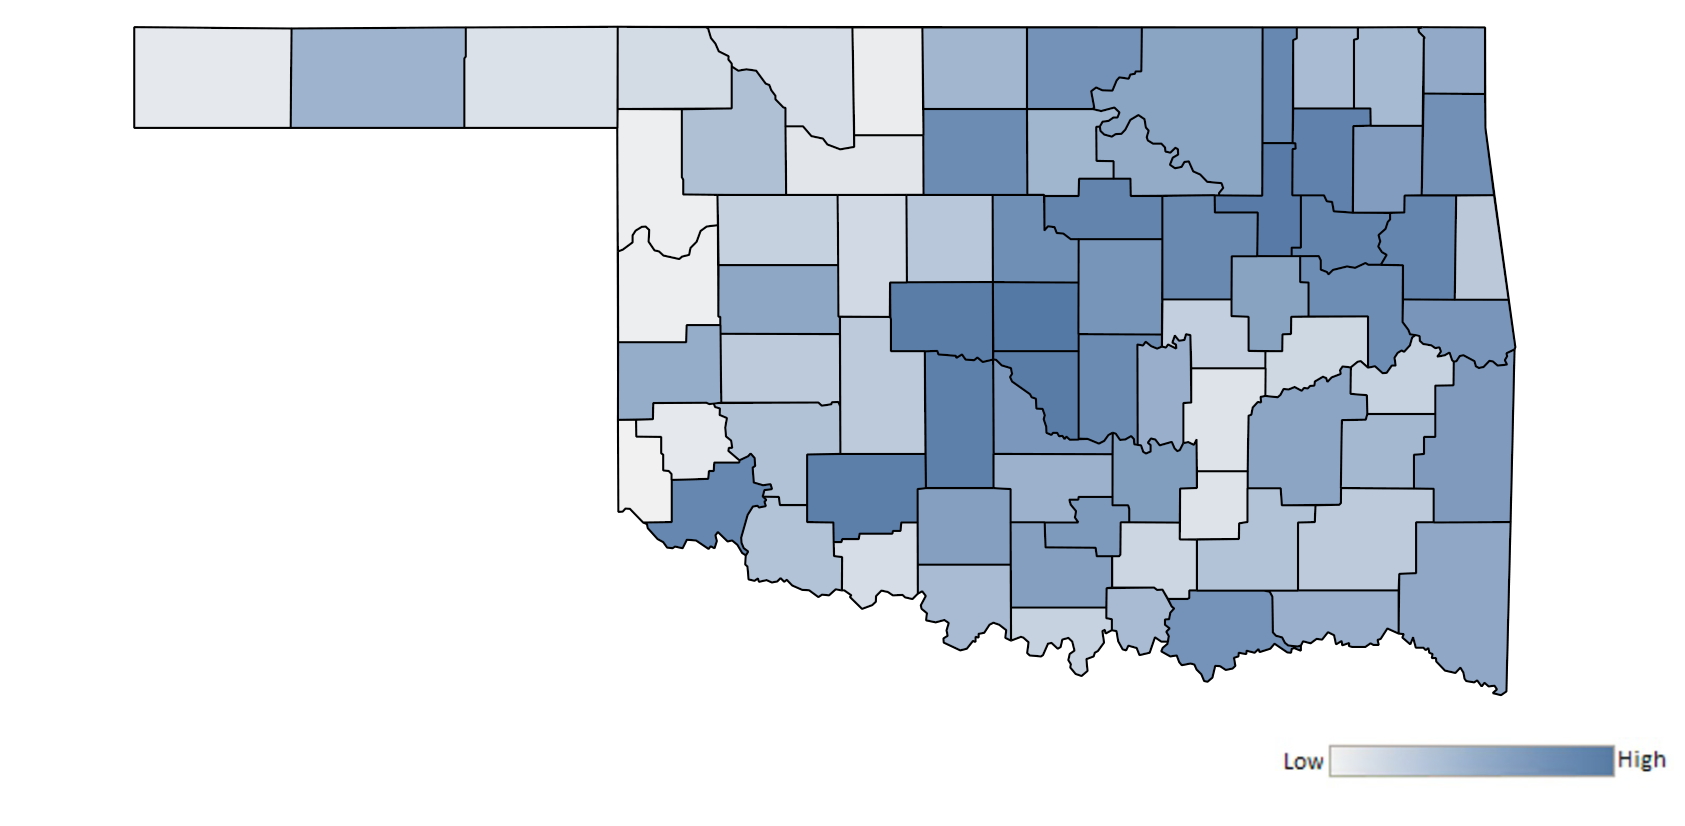 Map of Oklahoma counties indicating relative number of complaints from low to high. See attached CSV file for complaint data by jurisdiction.